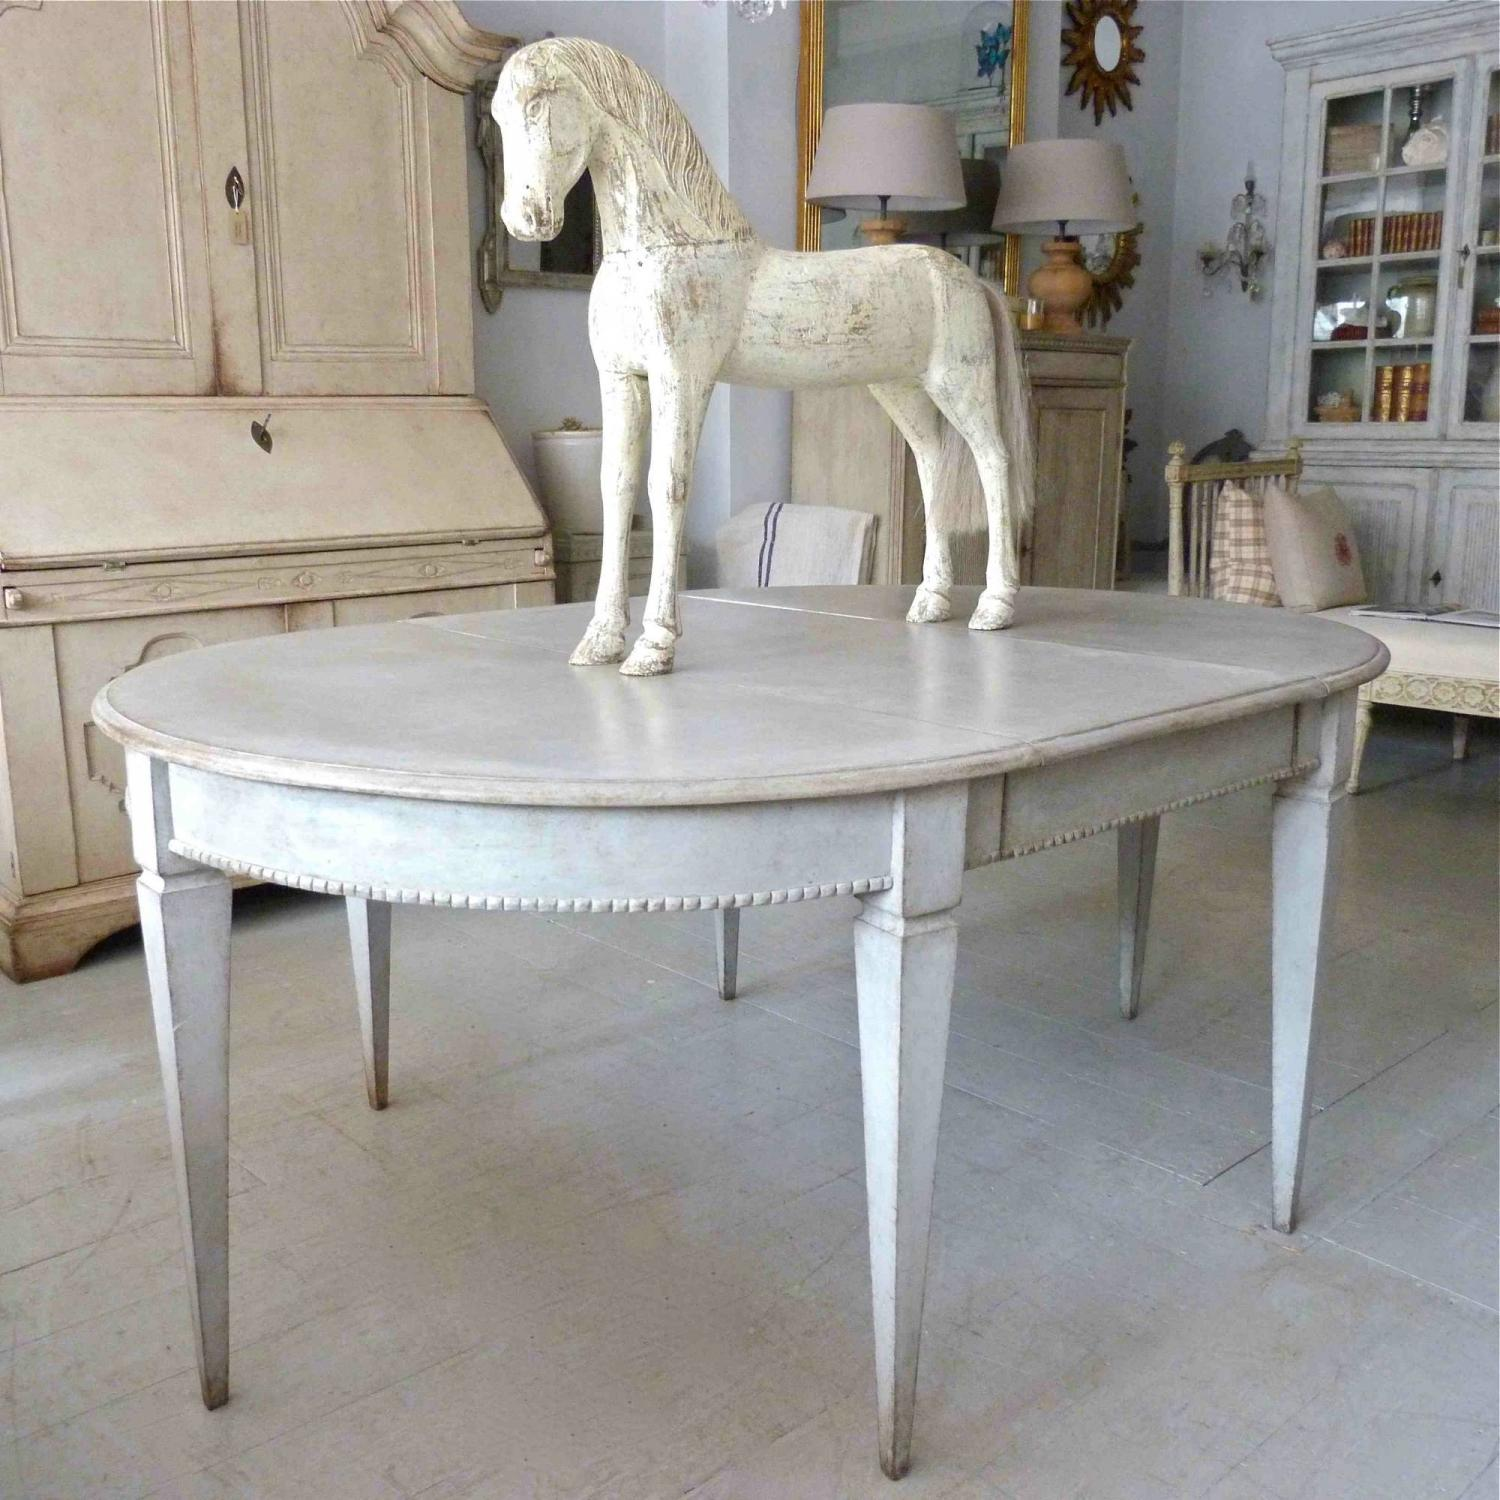 Antique Swedish Gustavian Style Dining Table In Antique